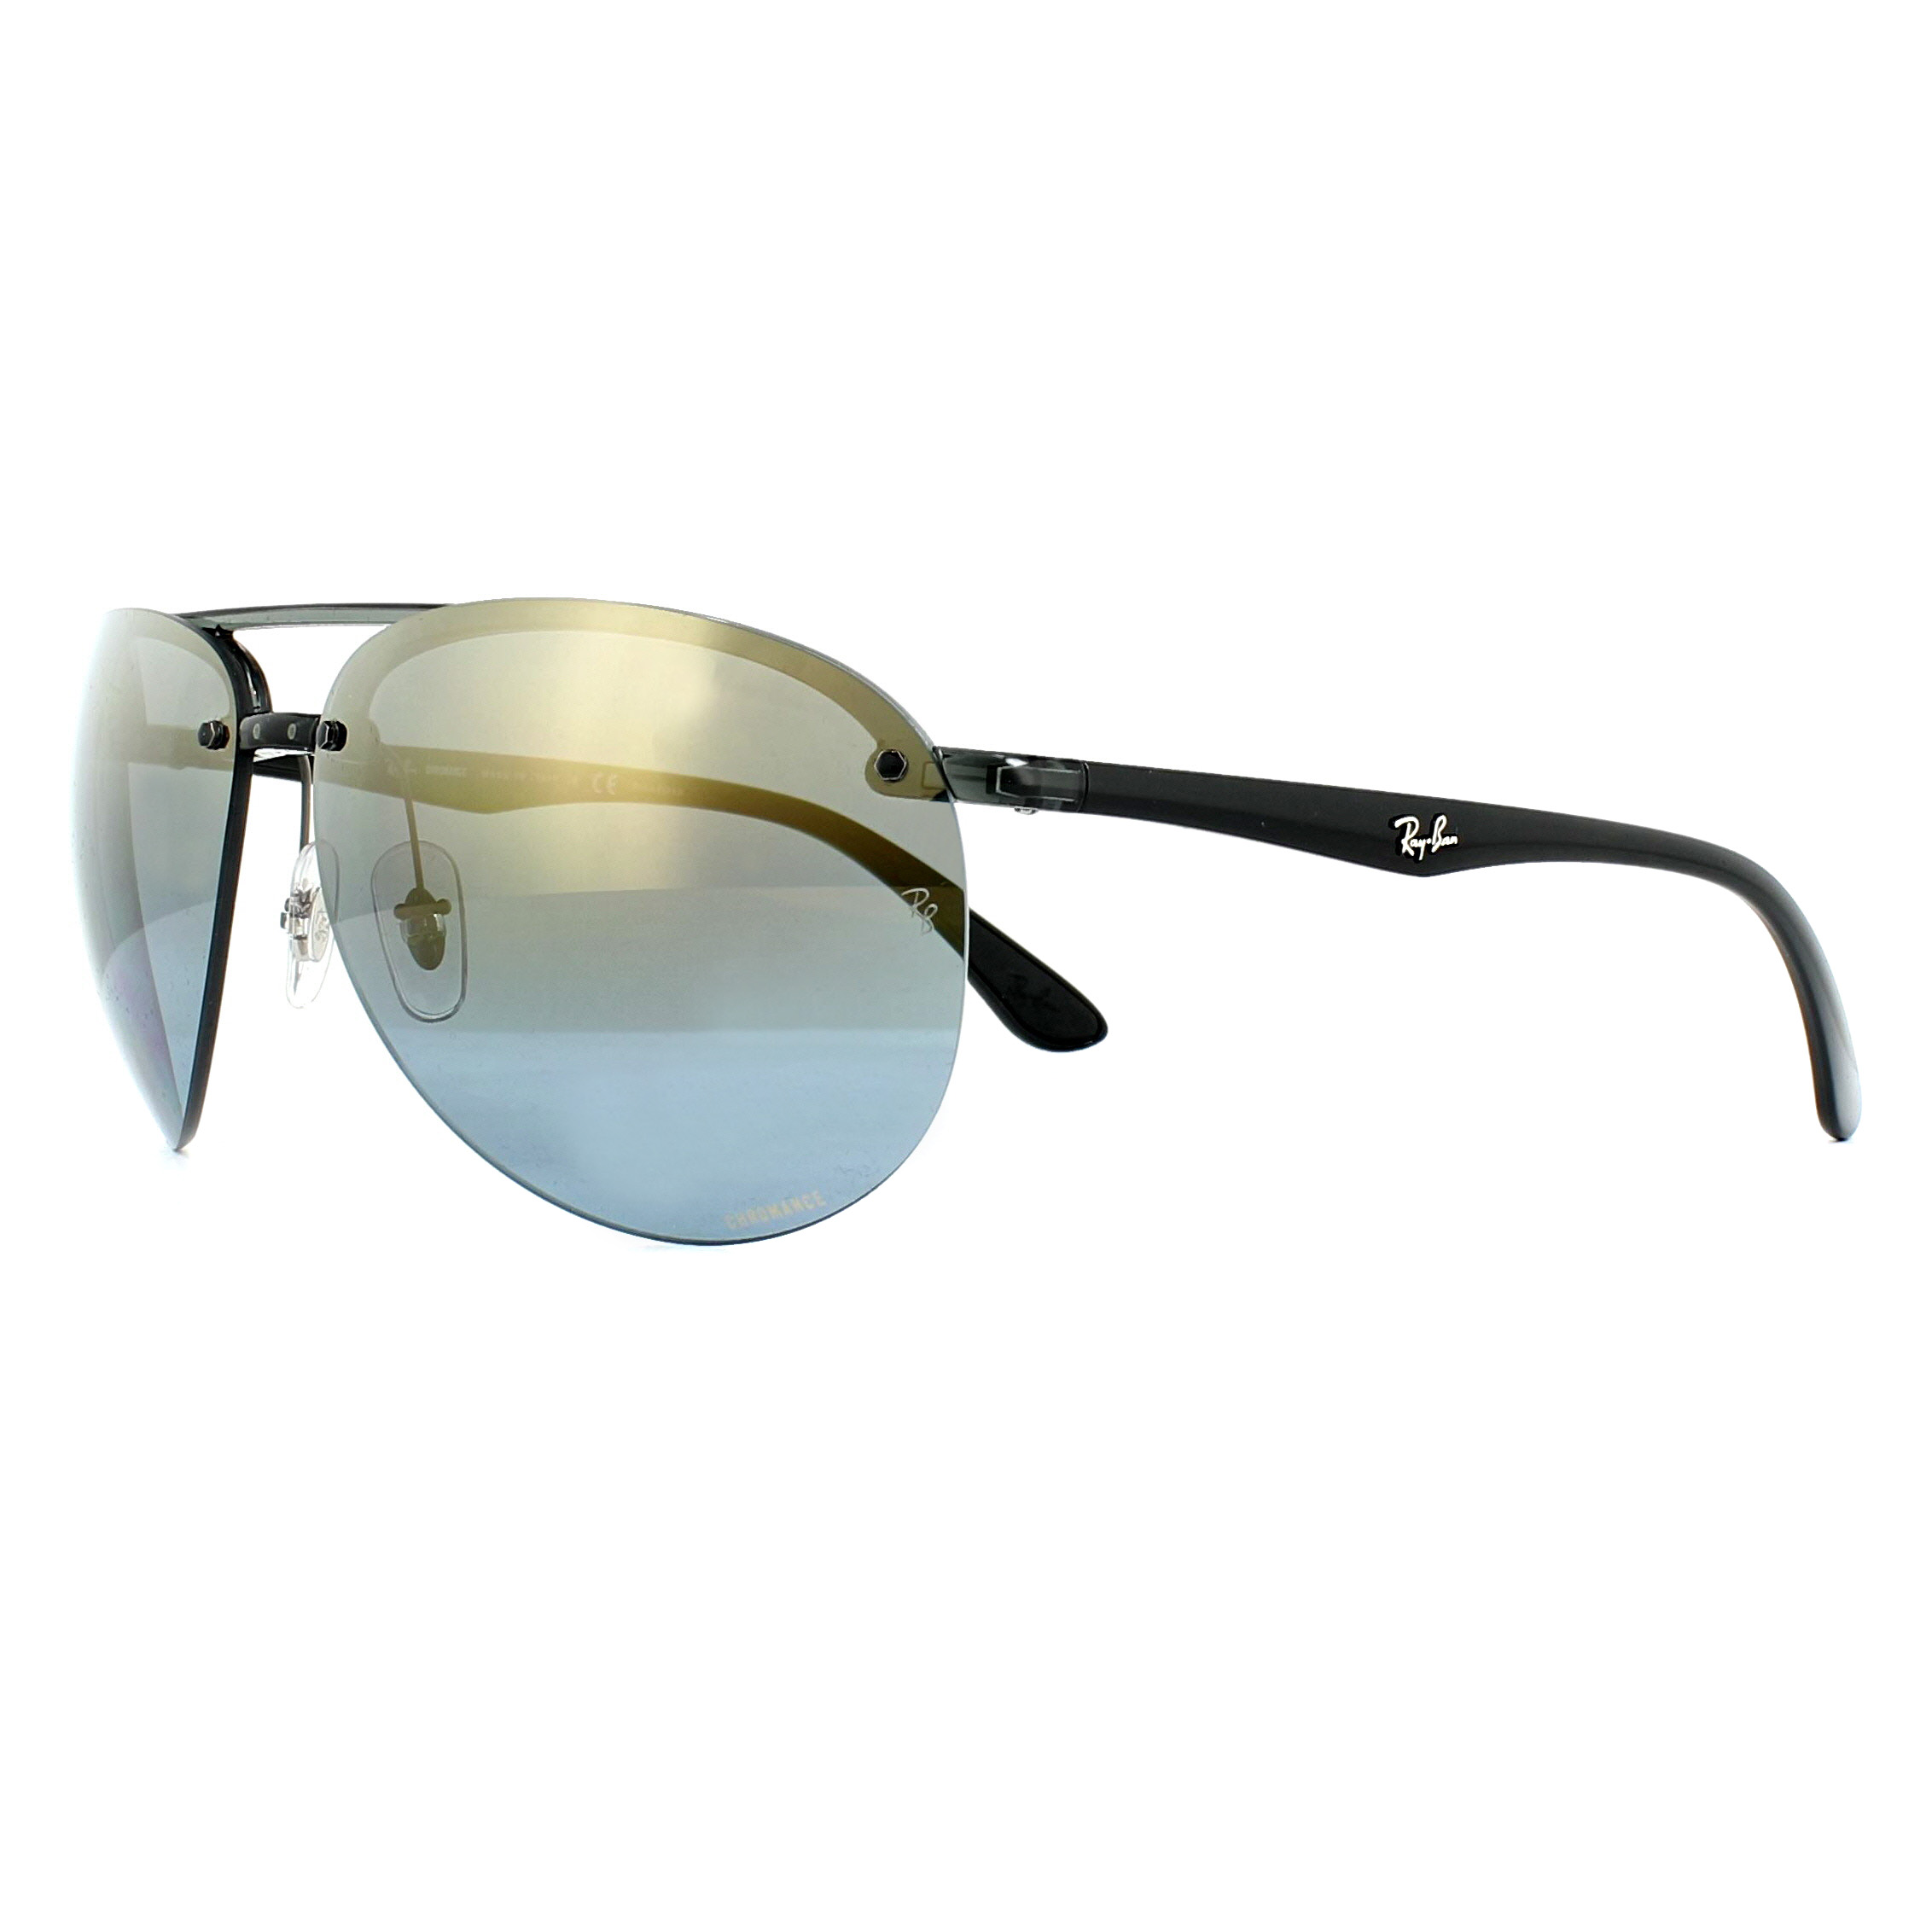 Sentinel Ray-Ban Sunglasses RB4293CH 876 J0 Grey Blue Gradient Mirror  Polarized Chromance 9eafcded86